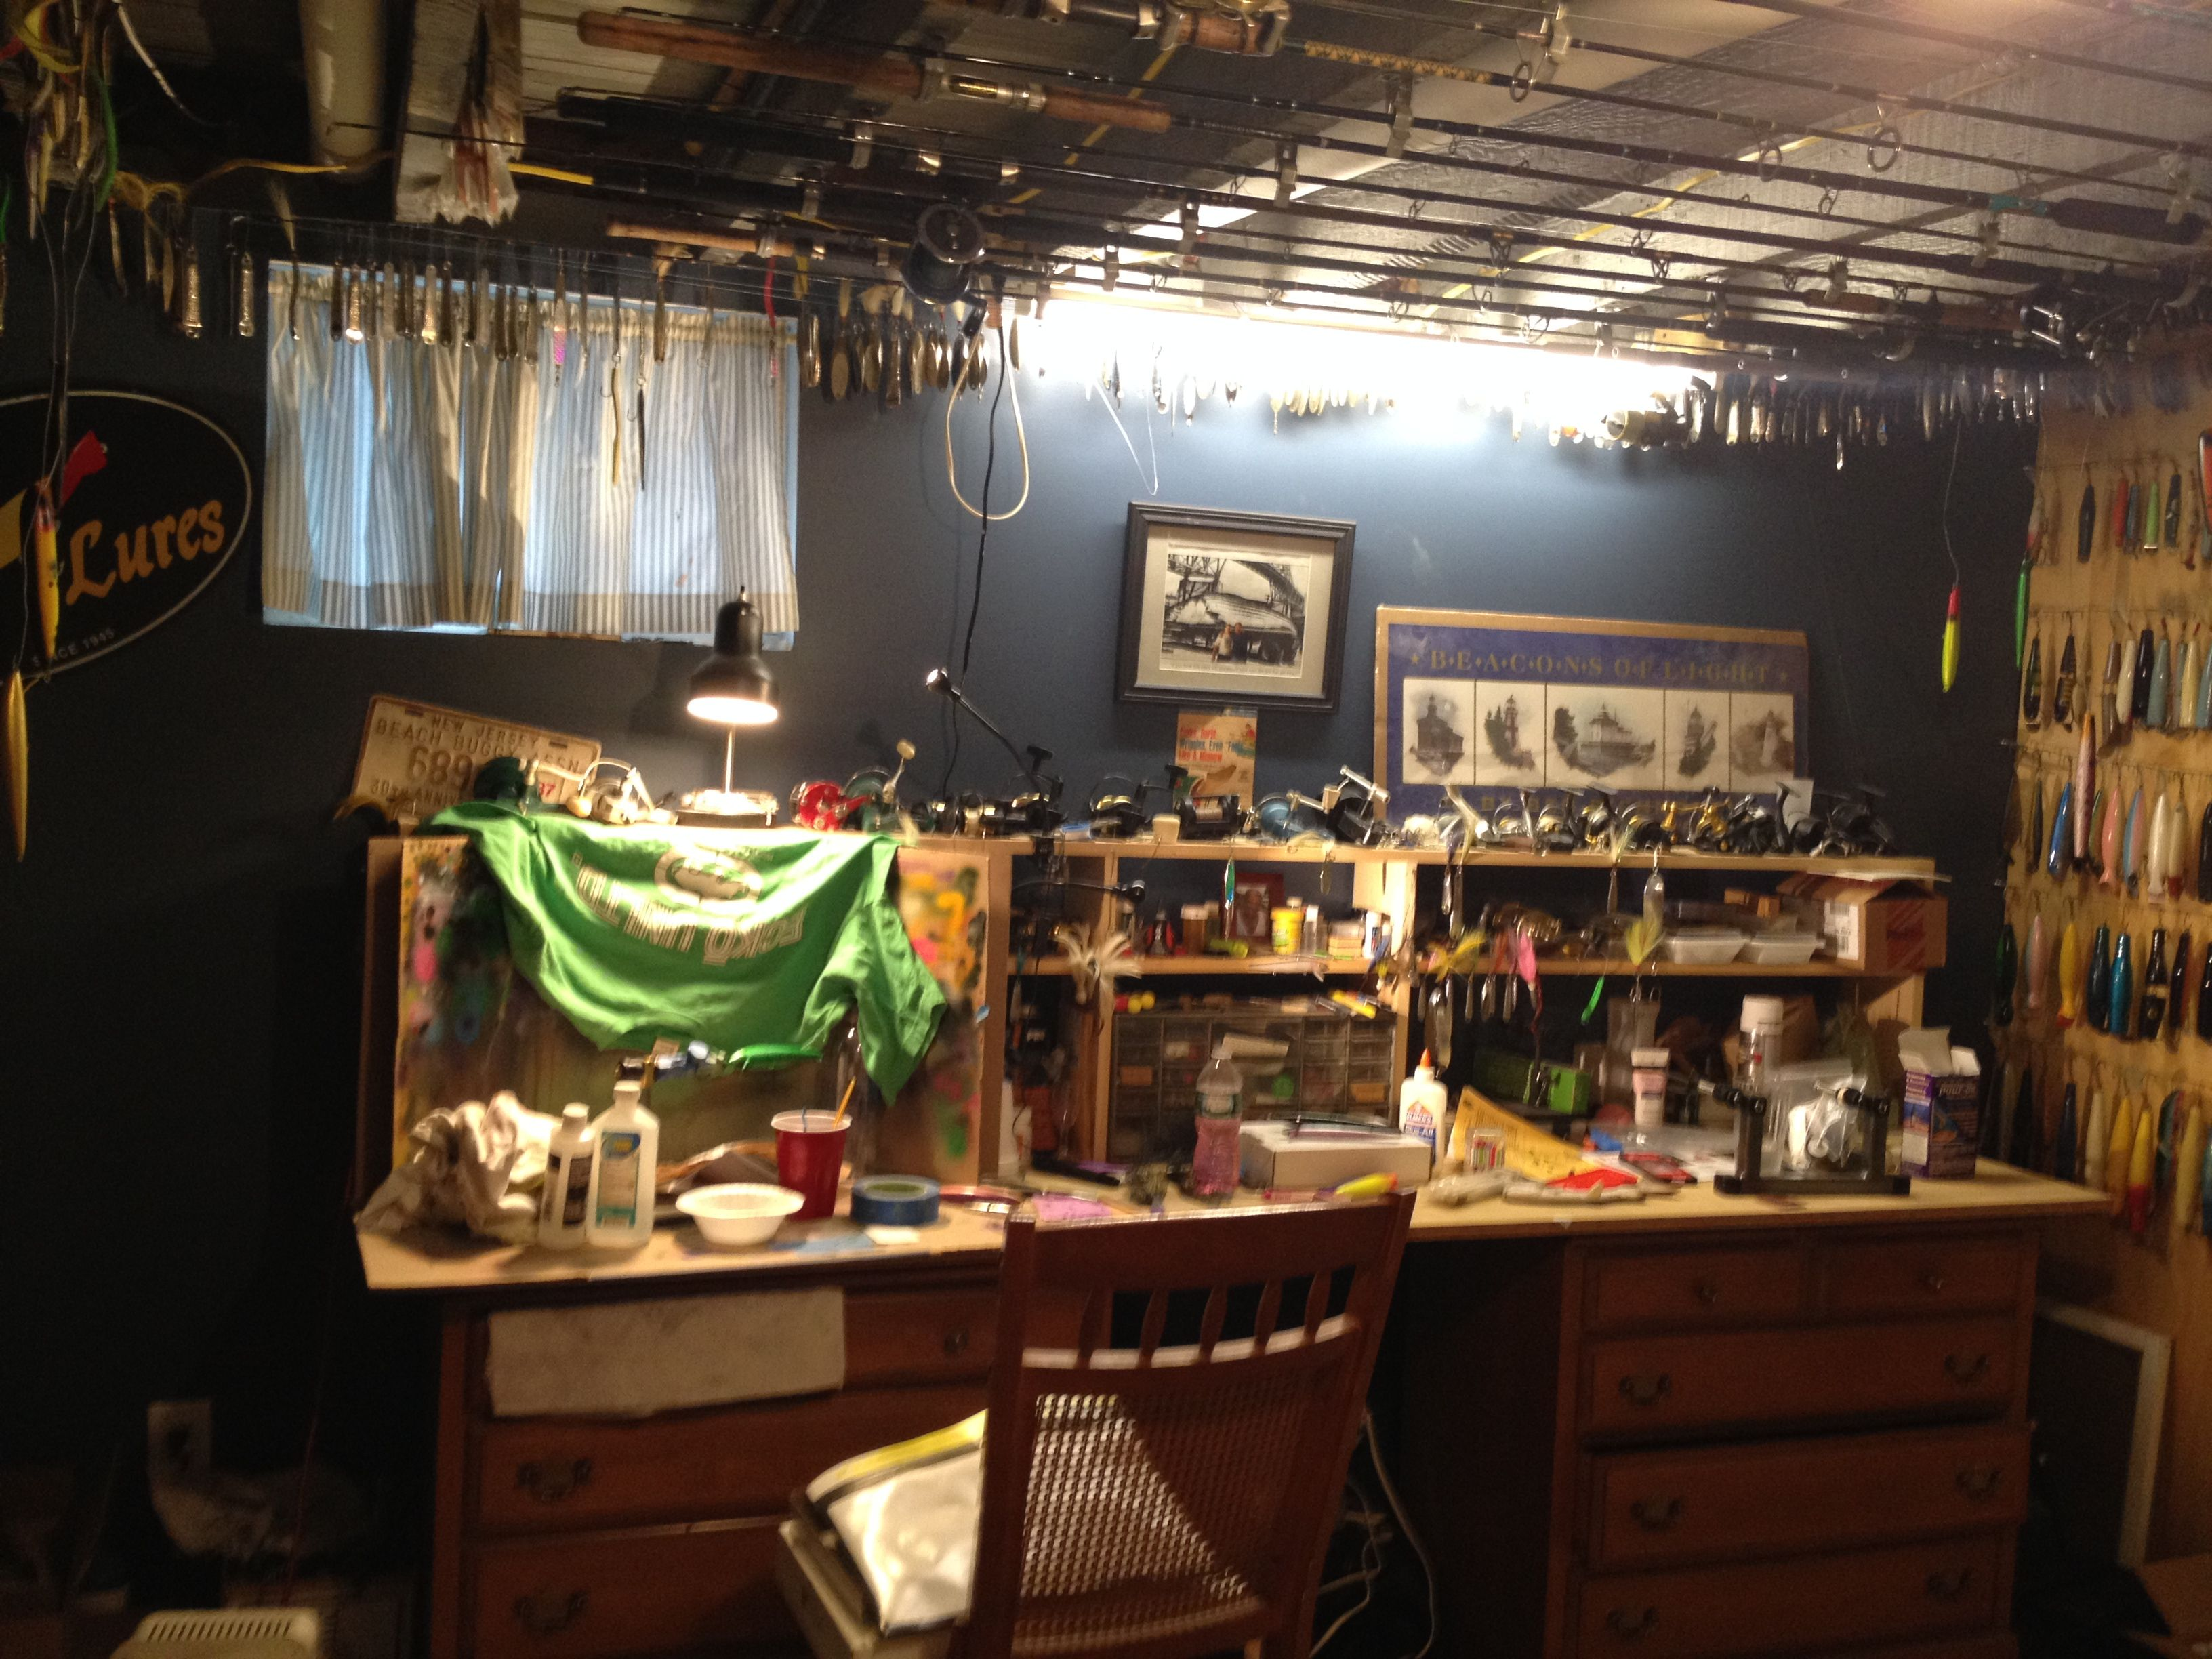 Man Cave Gear For Sale : Fishing tackle storage lets see your mancave setups